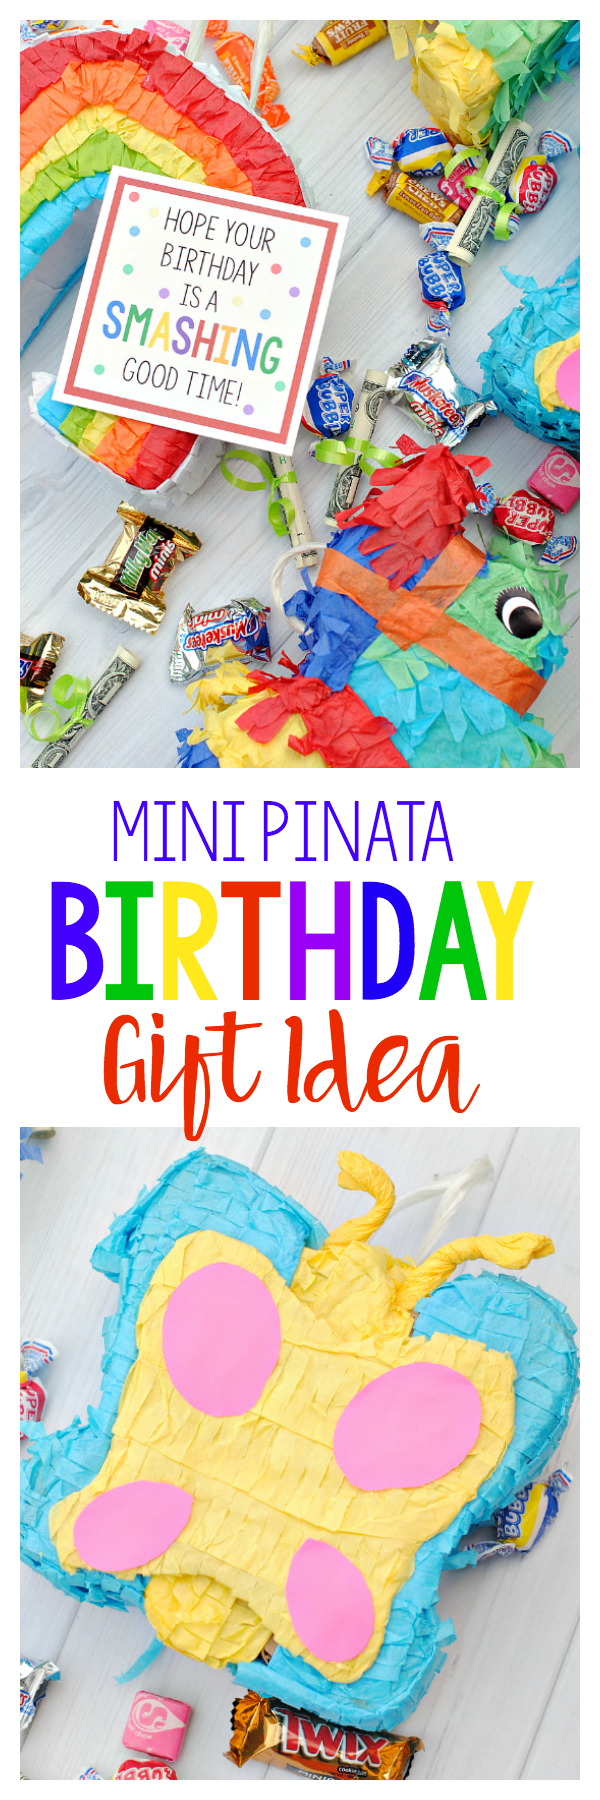 Cute birthday gift idea! Fill a mini piñata with candy and use this cute tag!